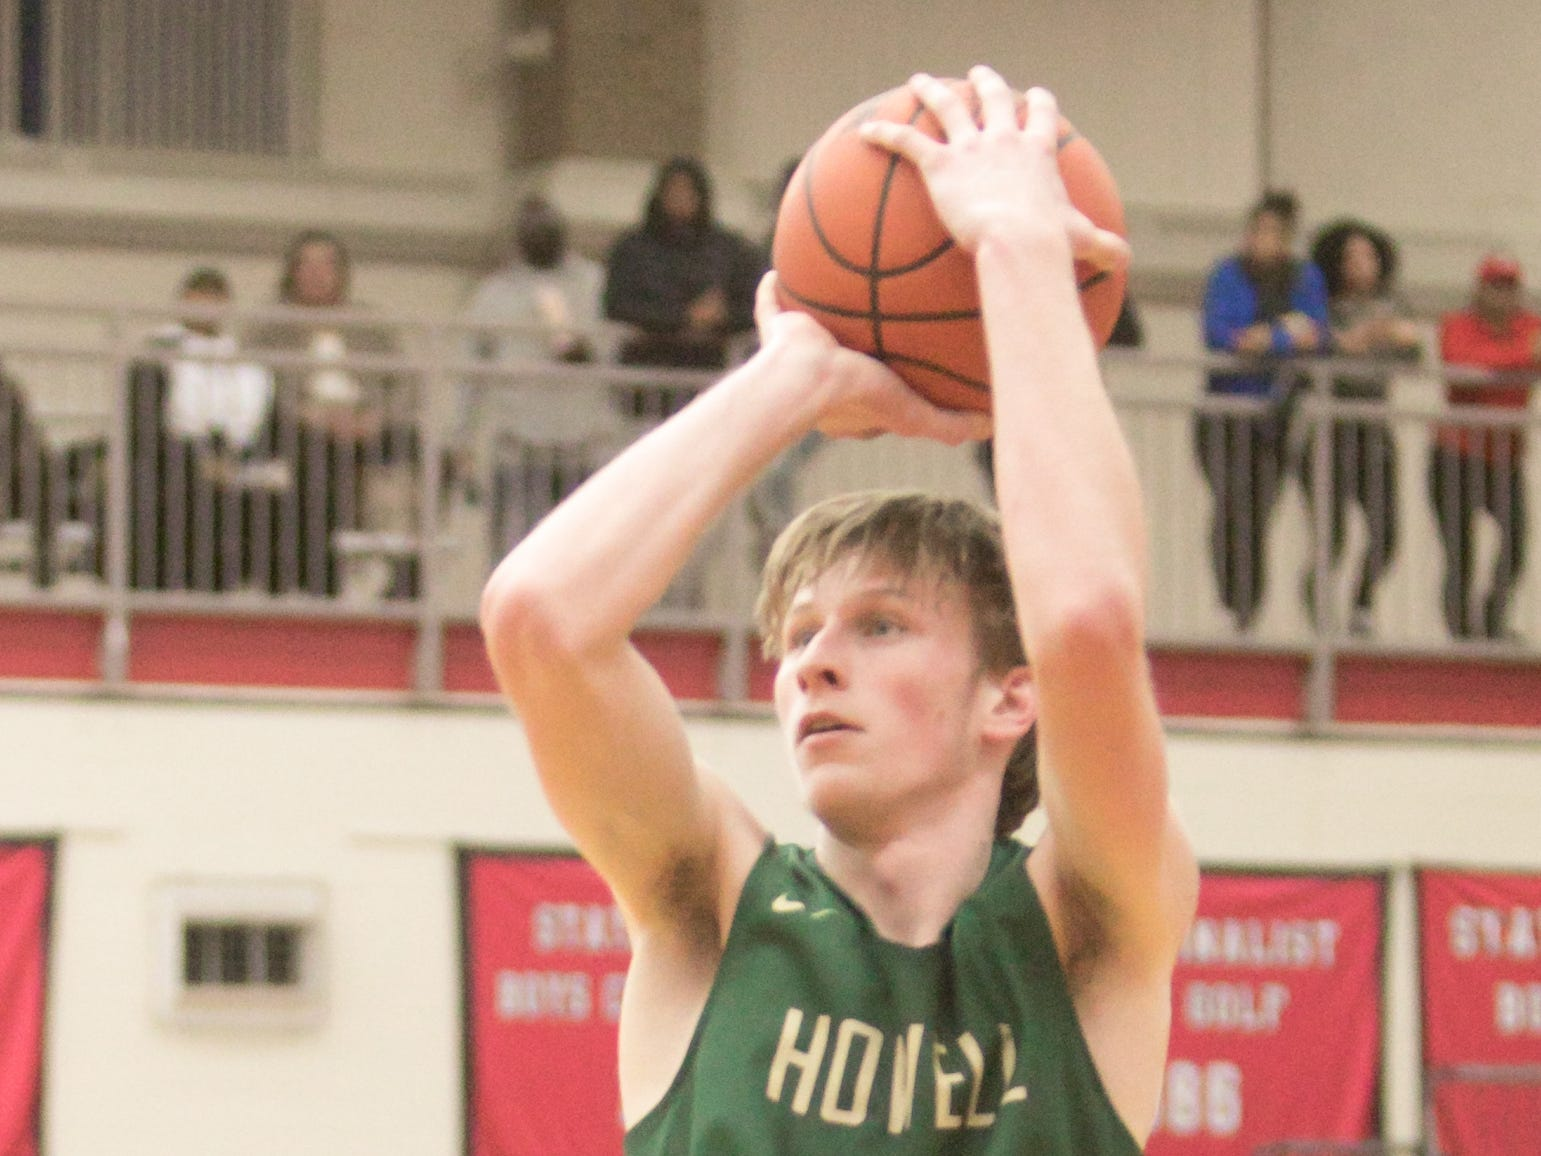 Howell's Cody Deurloo shoots in a 57-56 victory over Saginaw in a state basketball quarterfinal at Grand Blanc on Tuesday, March 12, 2019.